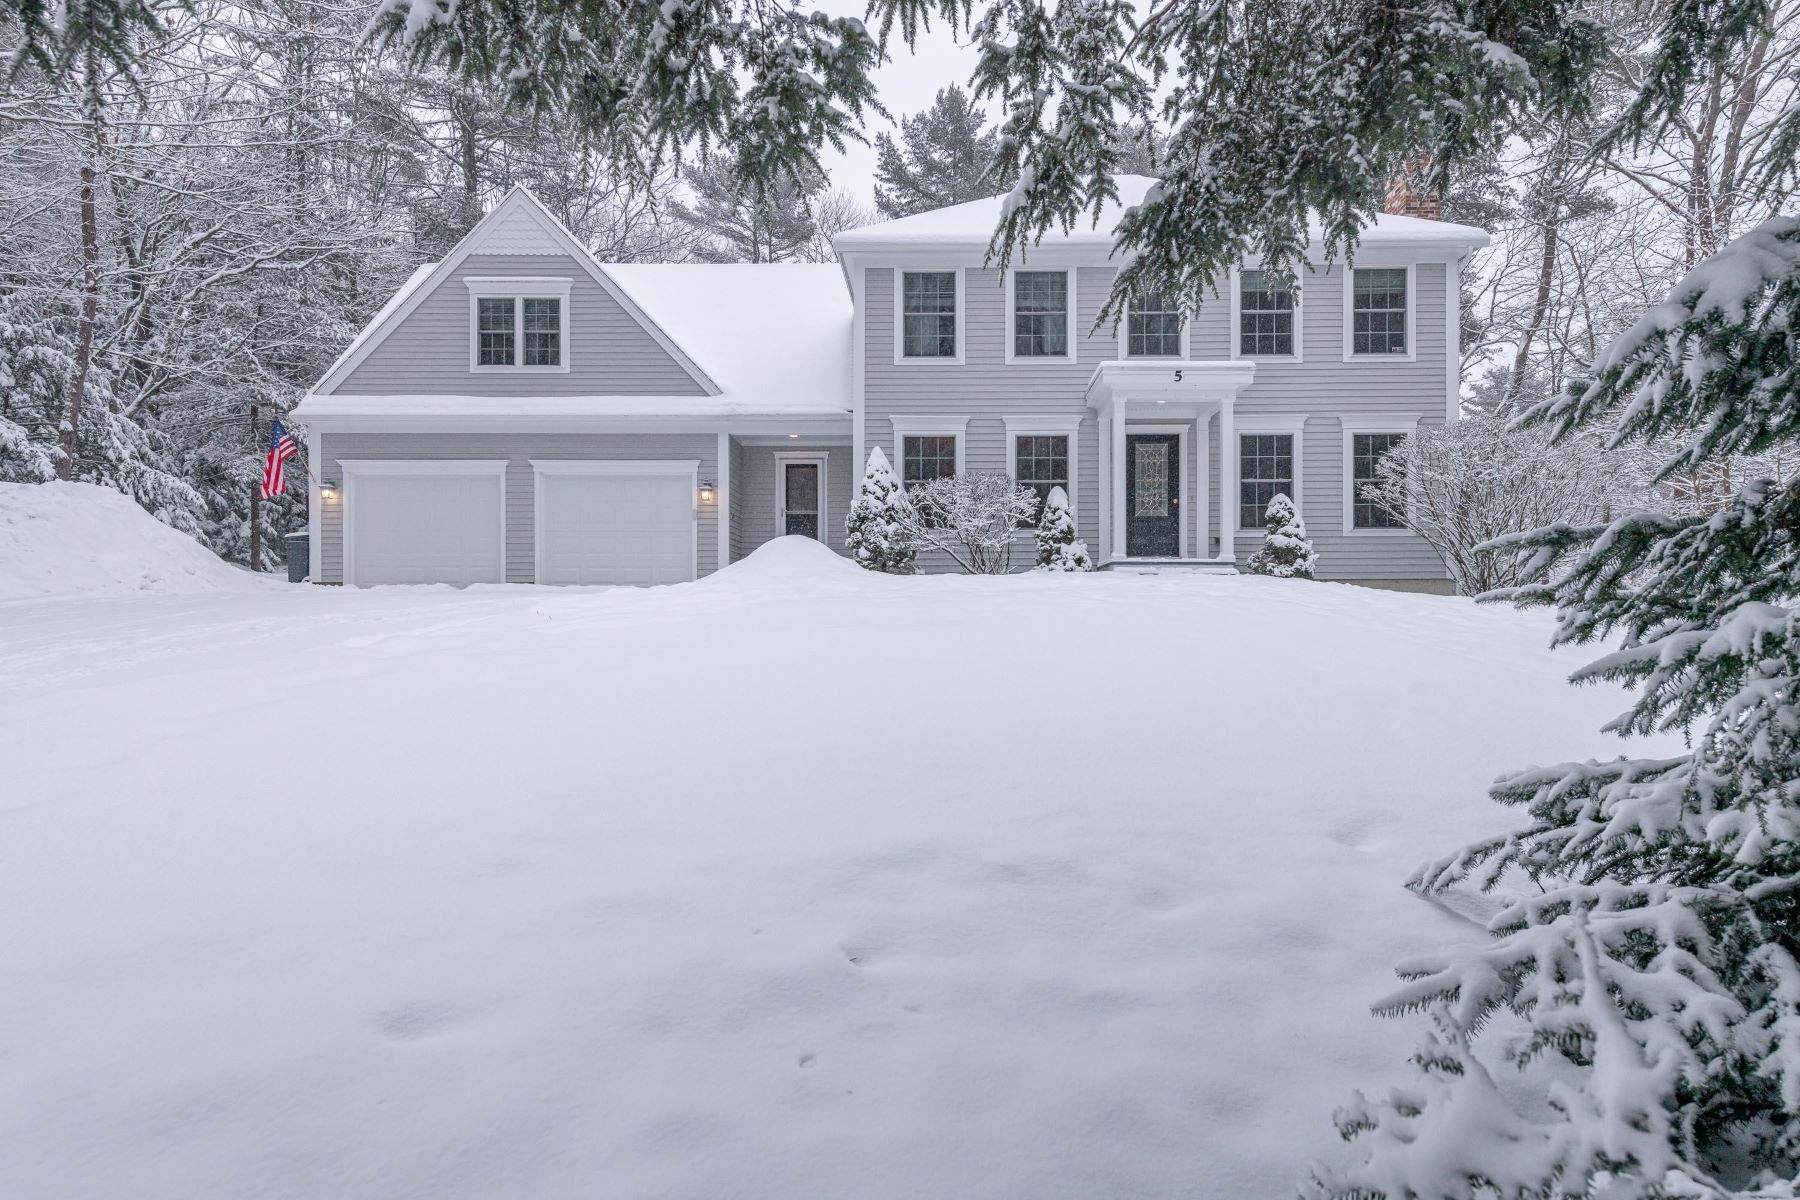 Single Family Homes for Sale at 5 Quaker Lane Falmouth, Maine 04105 United States